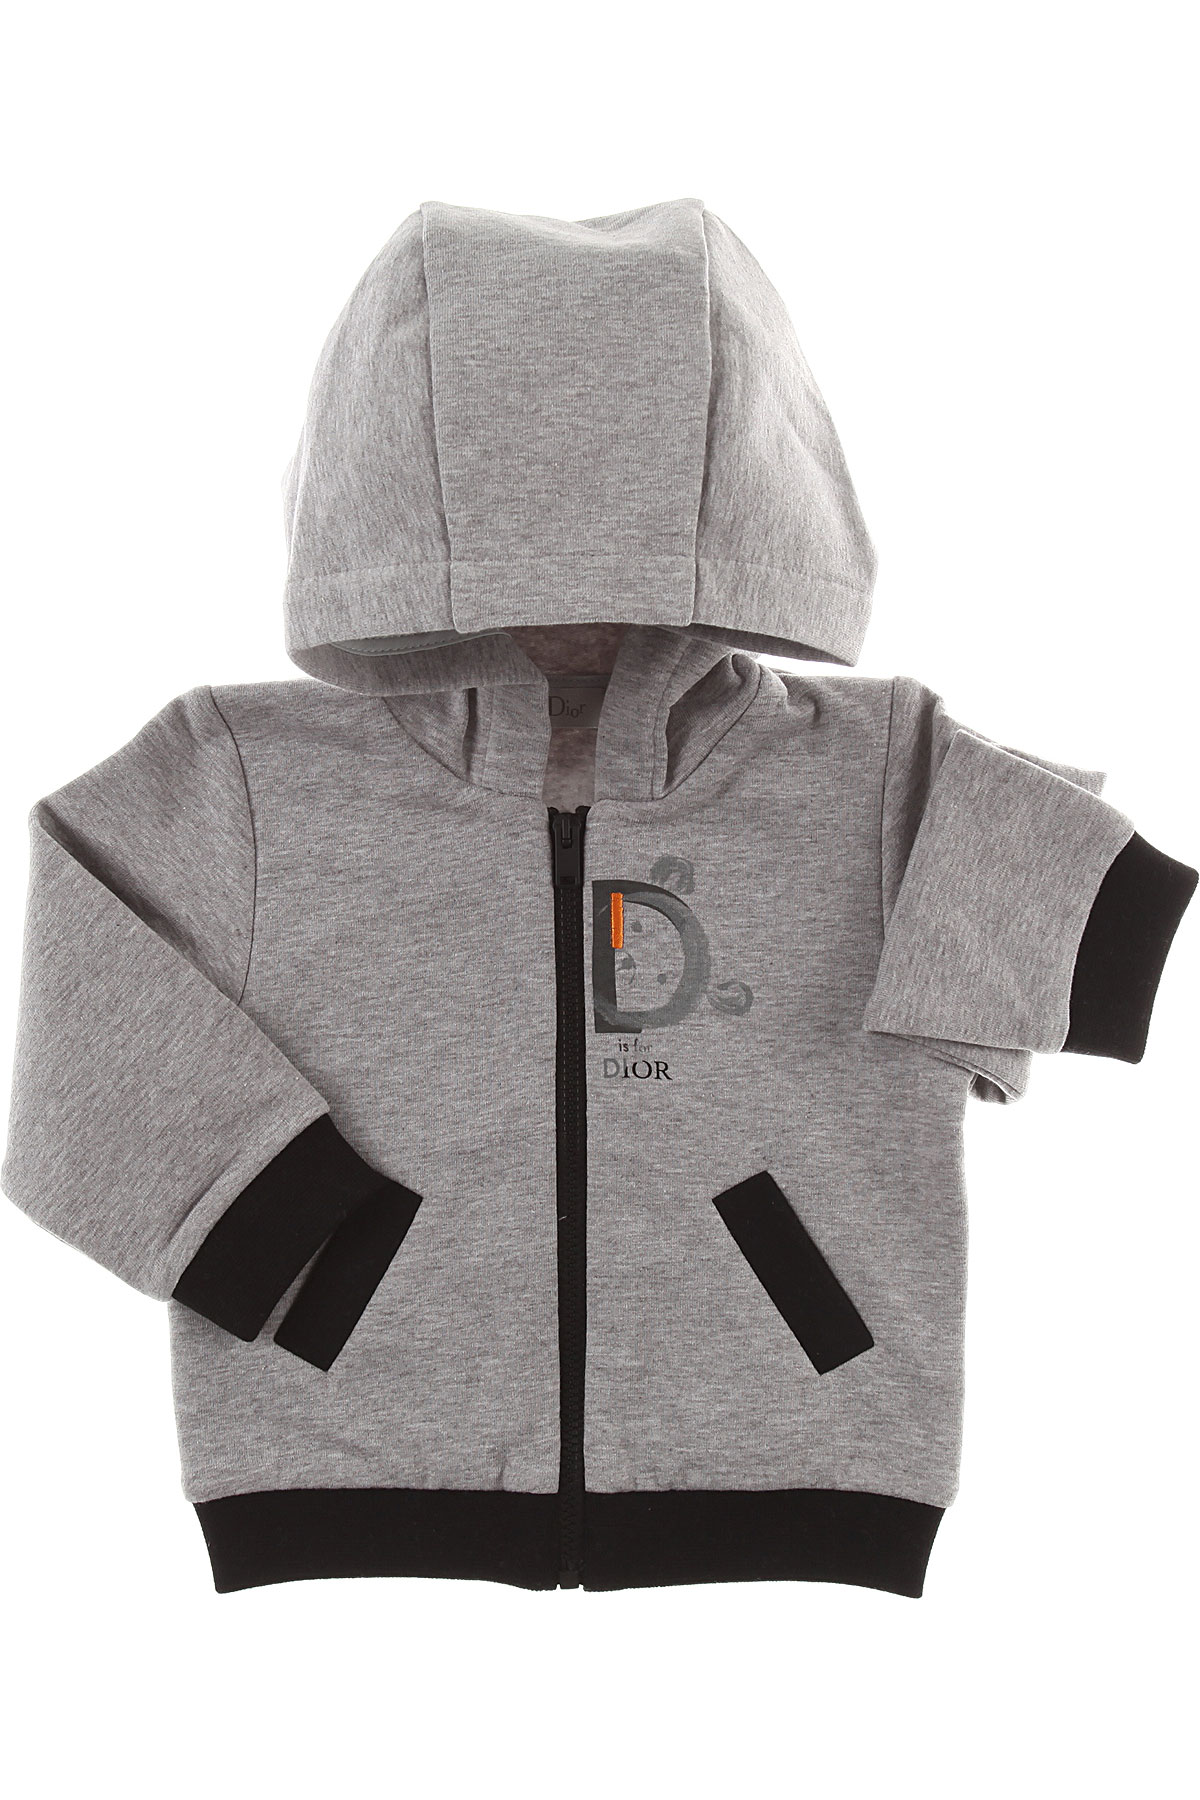 Image of Baby Dior Baby Sweatshirts & Hoodies for Boys, Grey Melange, Cotton, 2017, 12M 18M 2Y 3Y 6M 9M